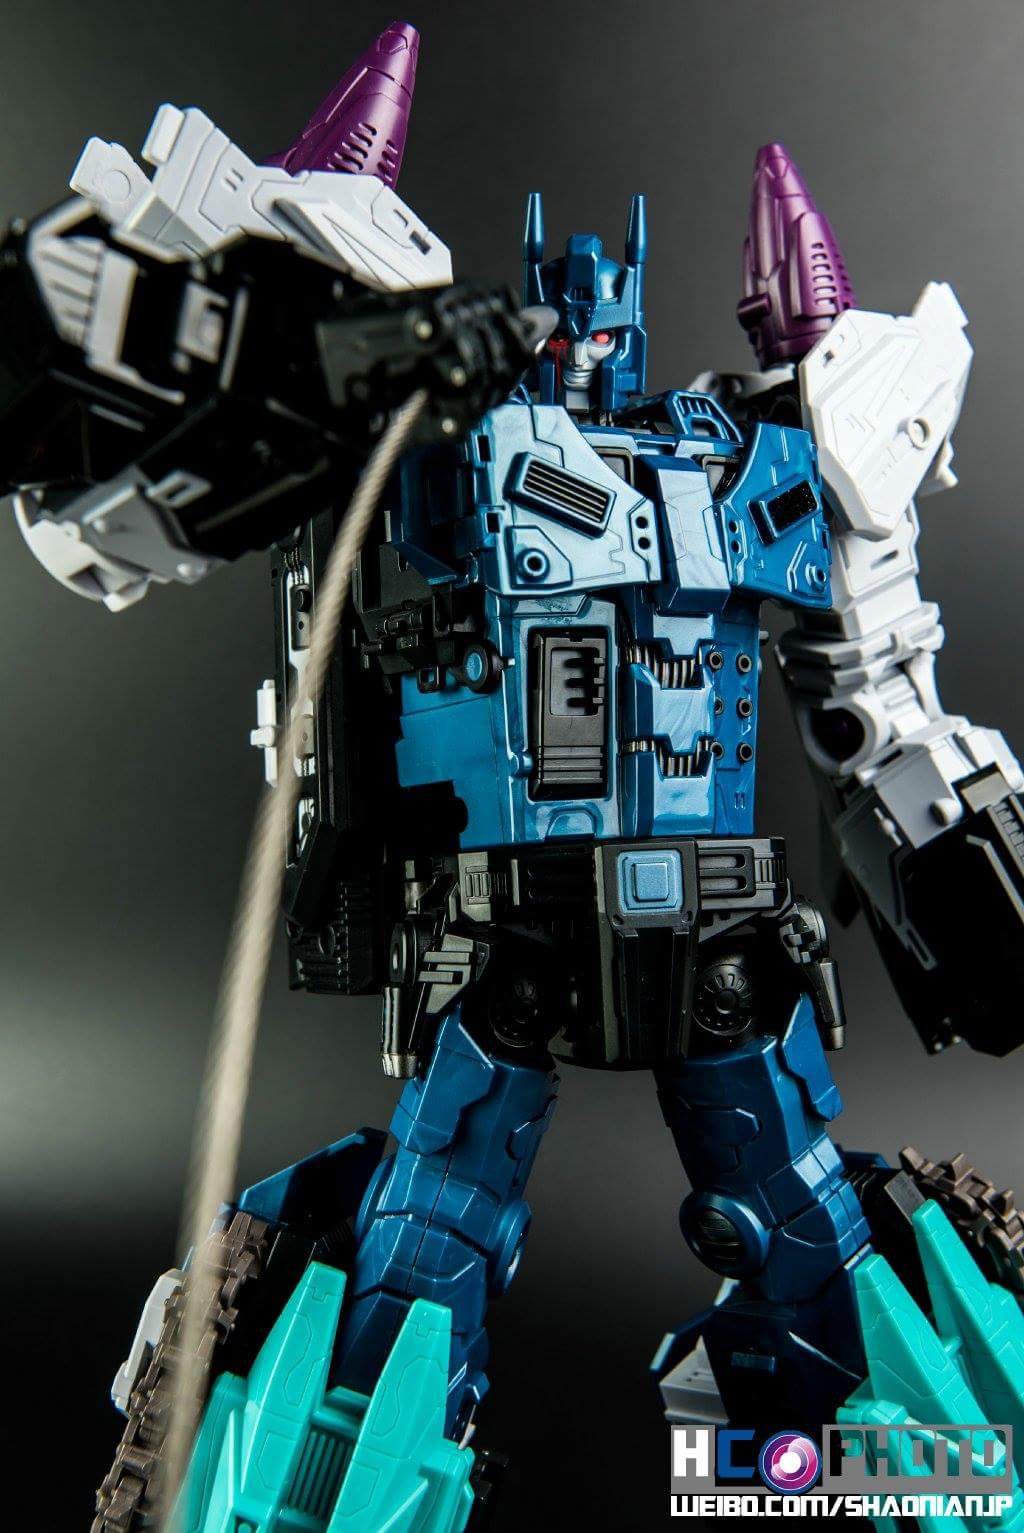 [Mastermind Creations] Produit Tiers - R-17 Carnifex - aka Overlord (TF Masterforce) - Page 3 NVFmXpL3